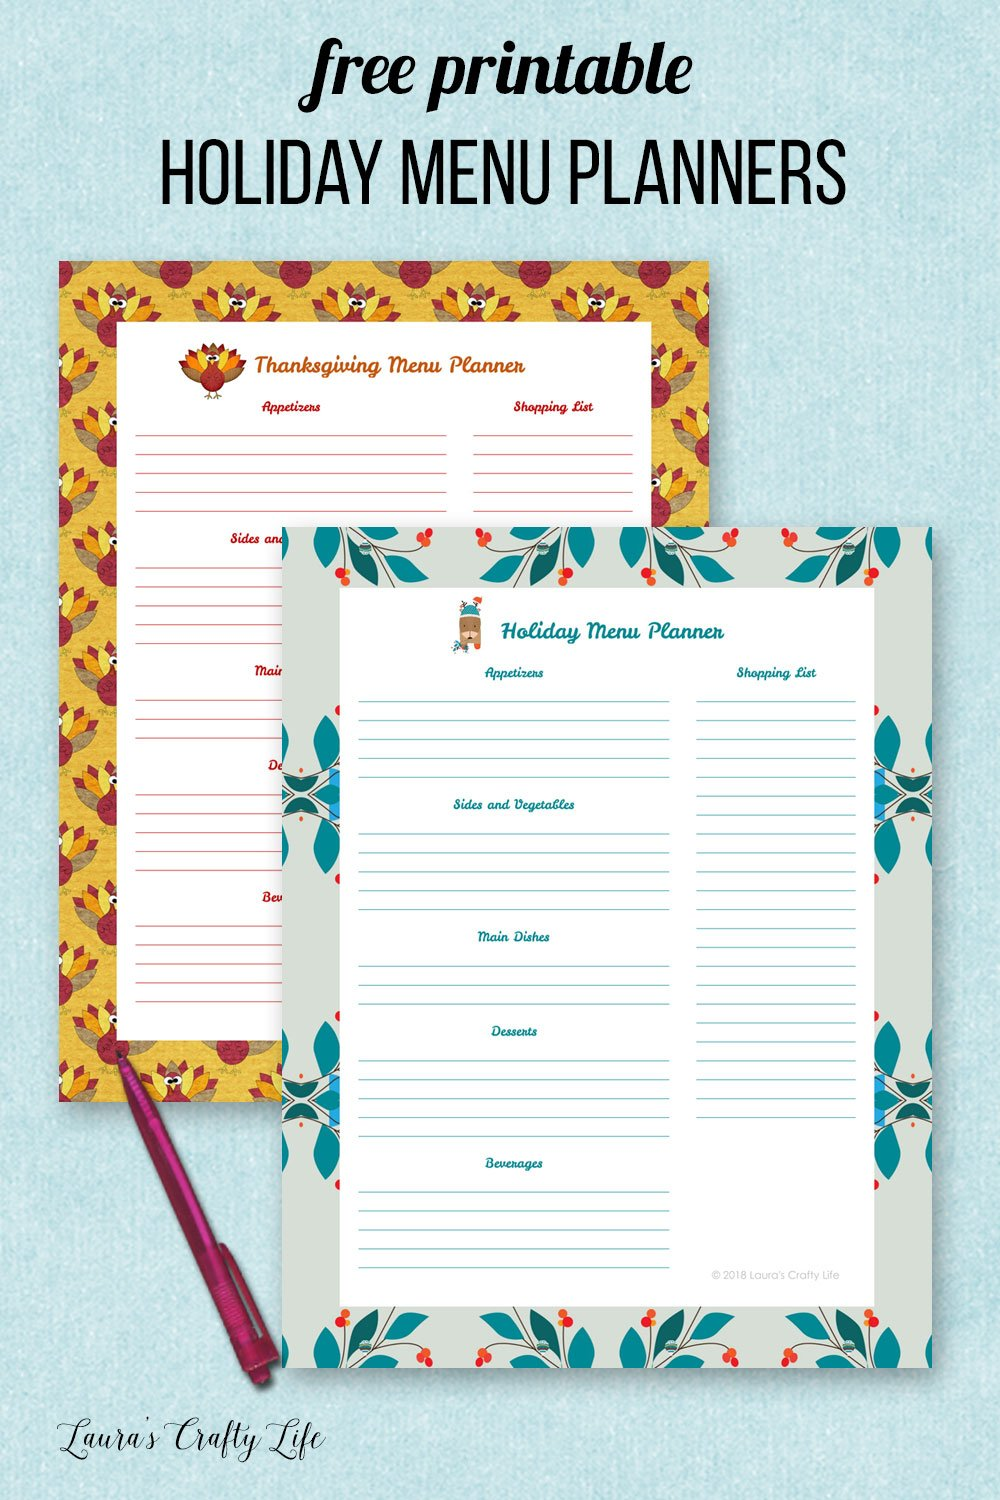 Free printable holiday menu planners. Add these to your holiday binder to get organized for the holidays and Thanksgiving. #laurascraftylife #freeprintable #menu #planners